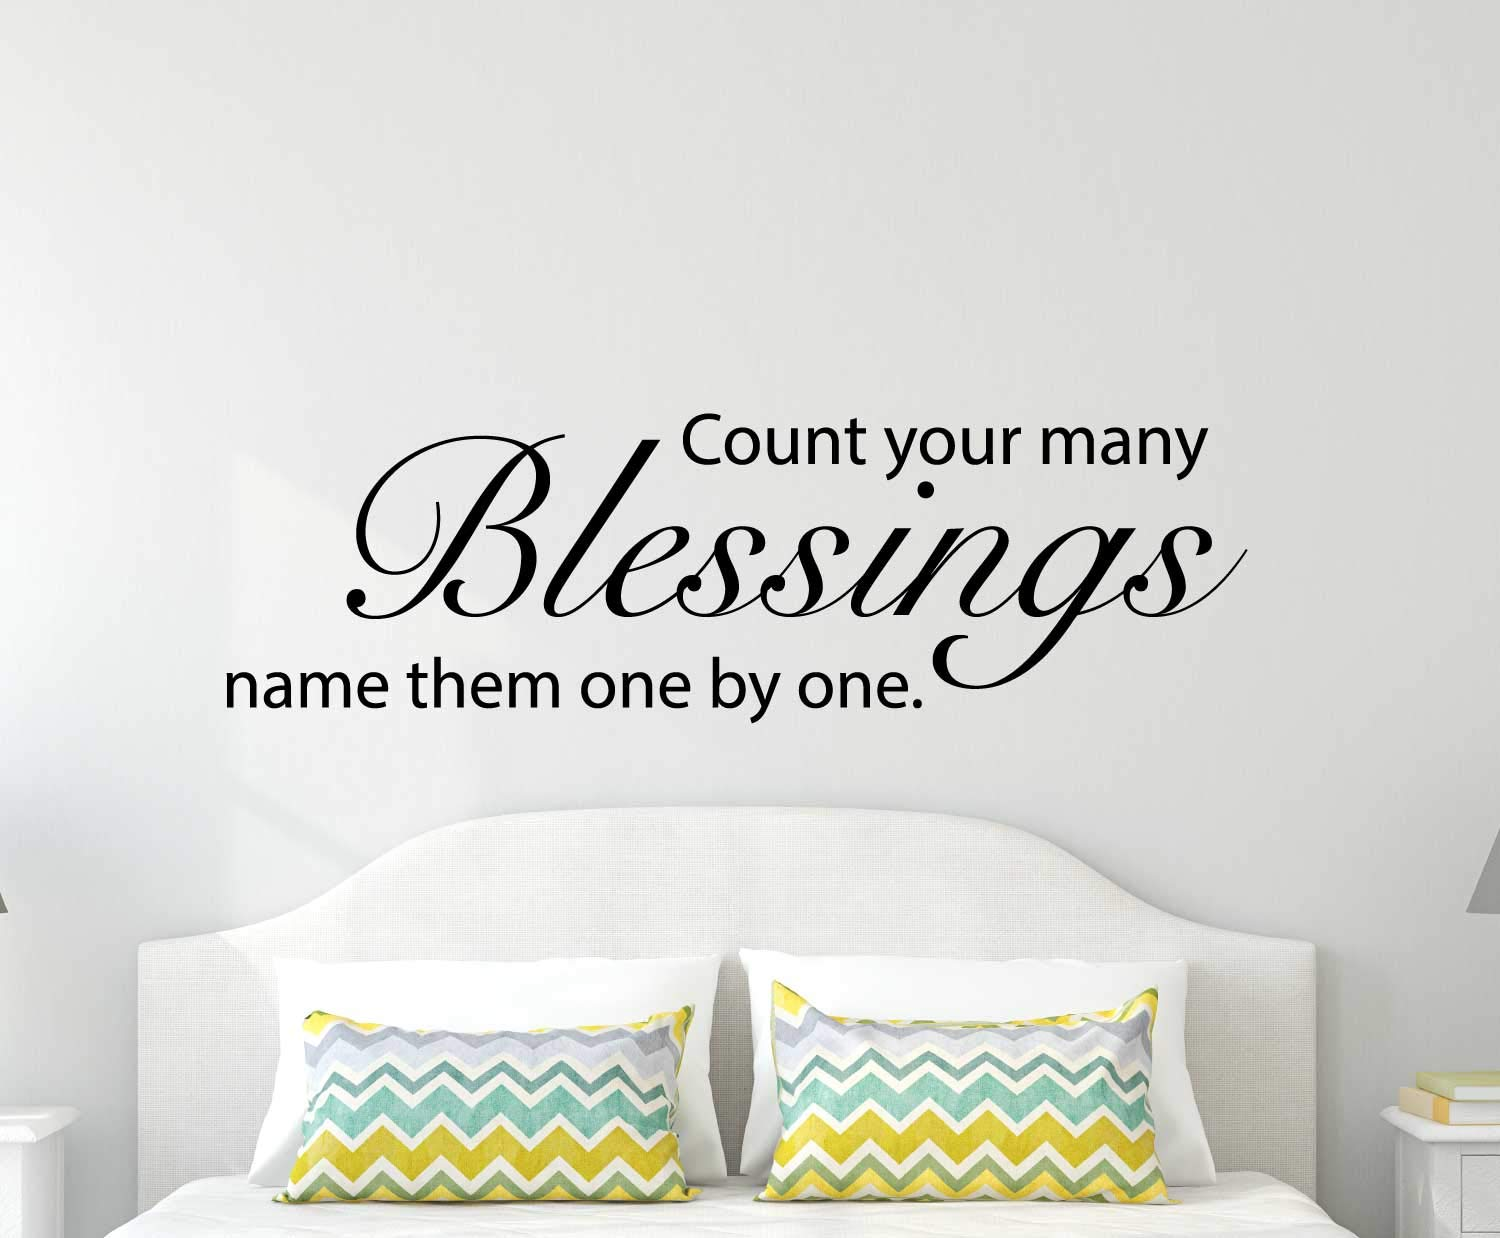 Count Your Many Blessings Vinyl Wall Decal Quote Song Lyrics For Living Room Bedroom Headboard Religious Inspirational Design For Christians Black White Brown Red Blue Pink 25 Colors Handmade